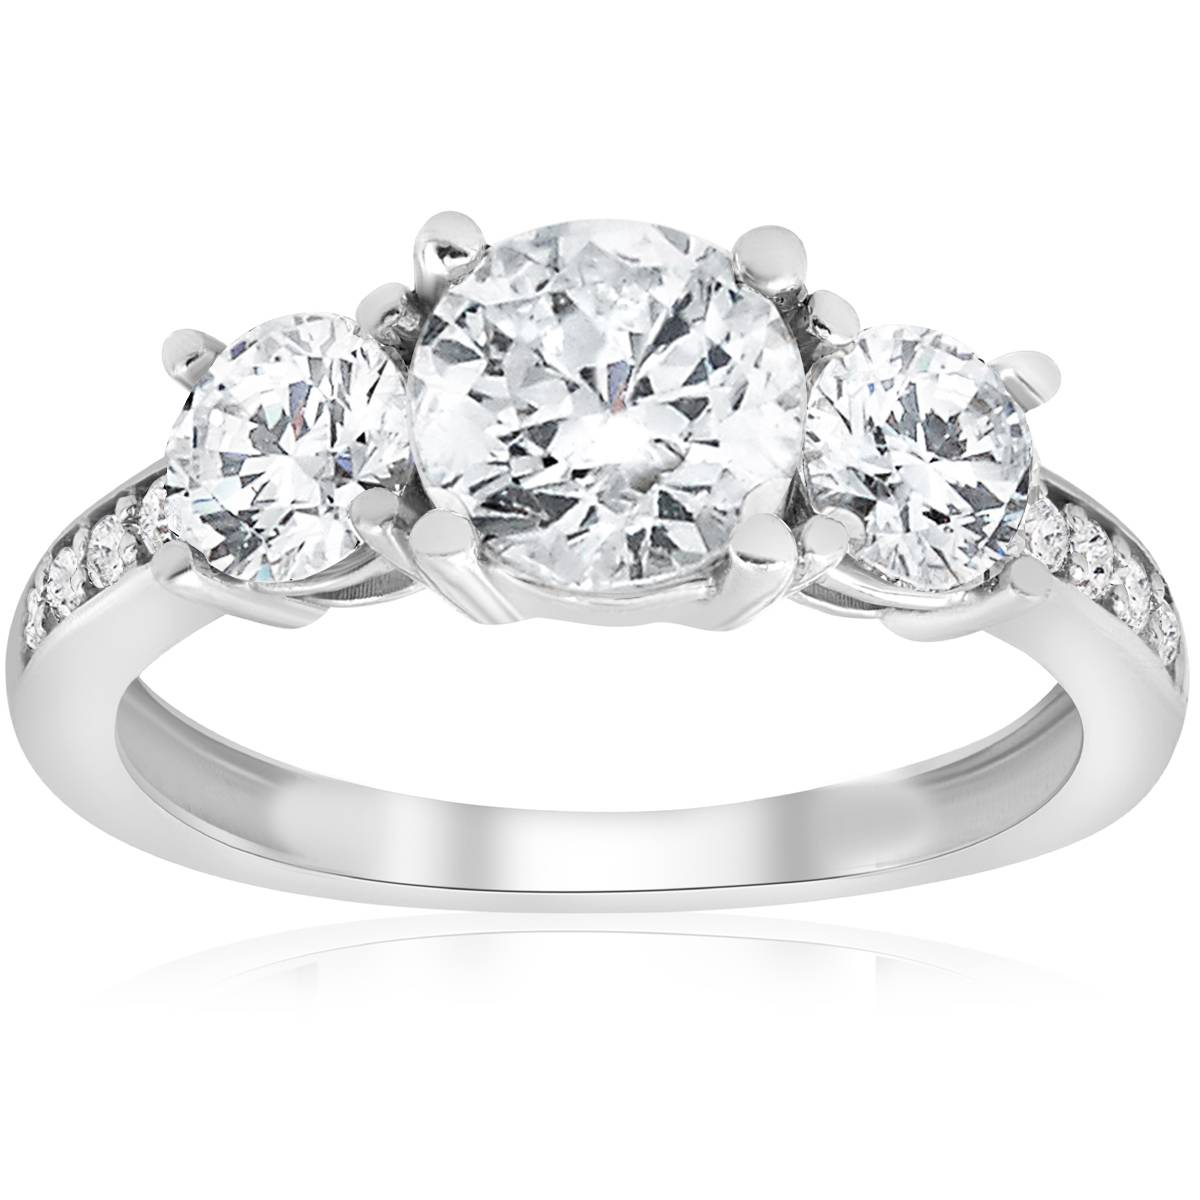 Stone Wedding Rings: 1 1/2ct 3-Stone Diamond Engagement Ring White Gold Round